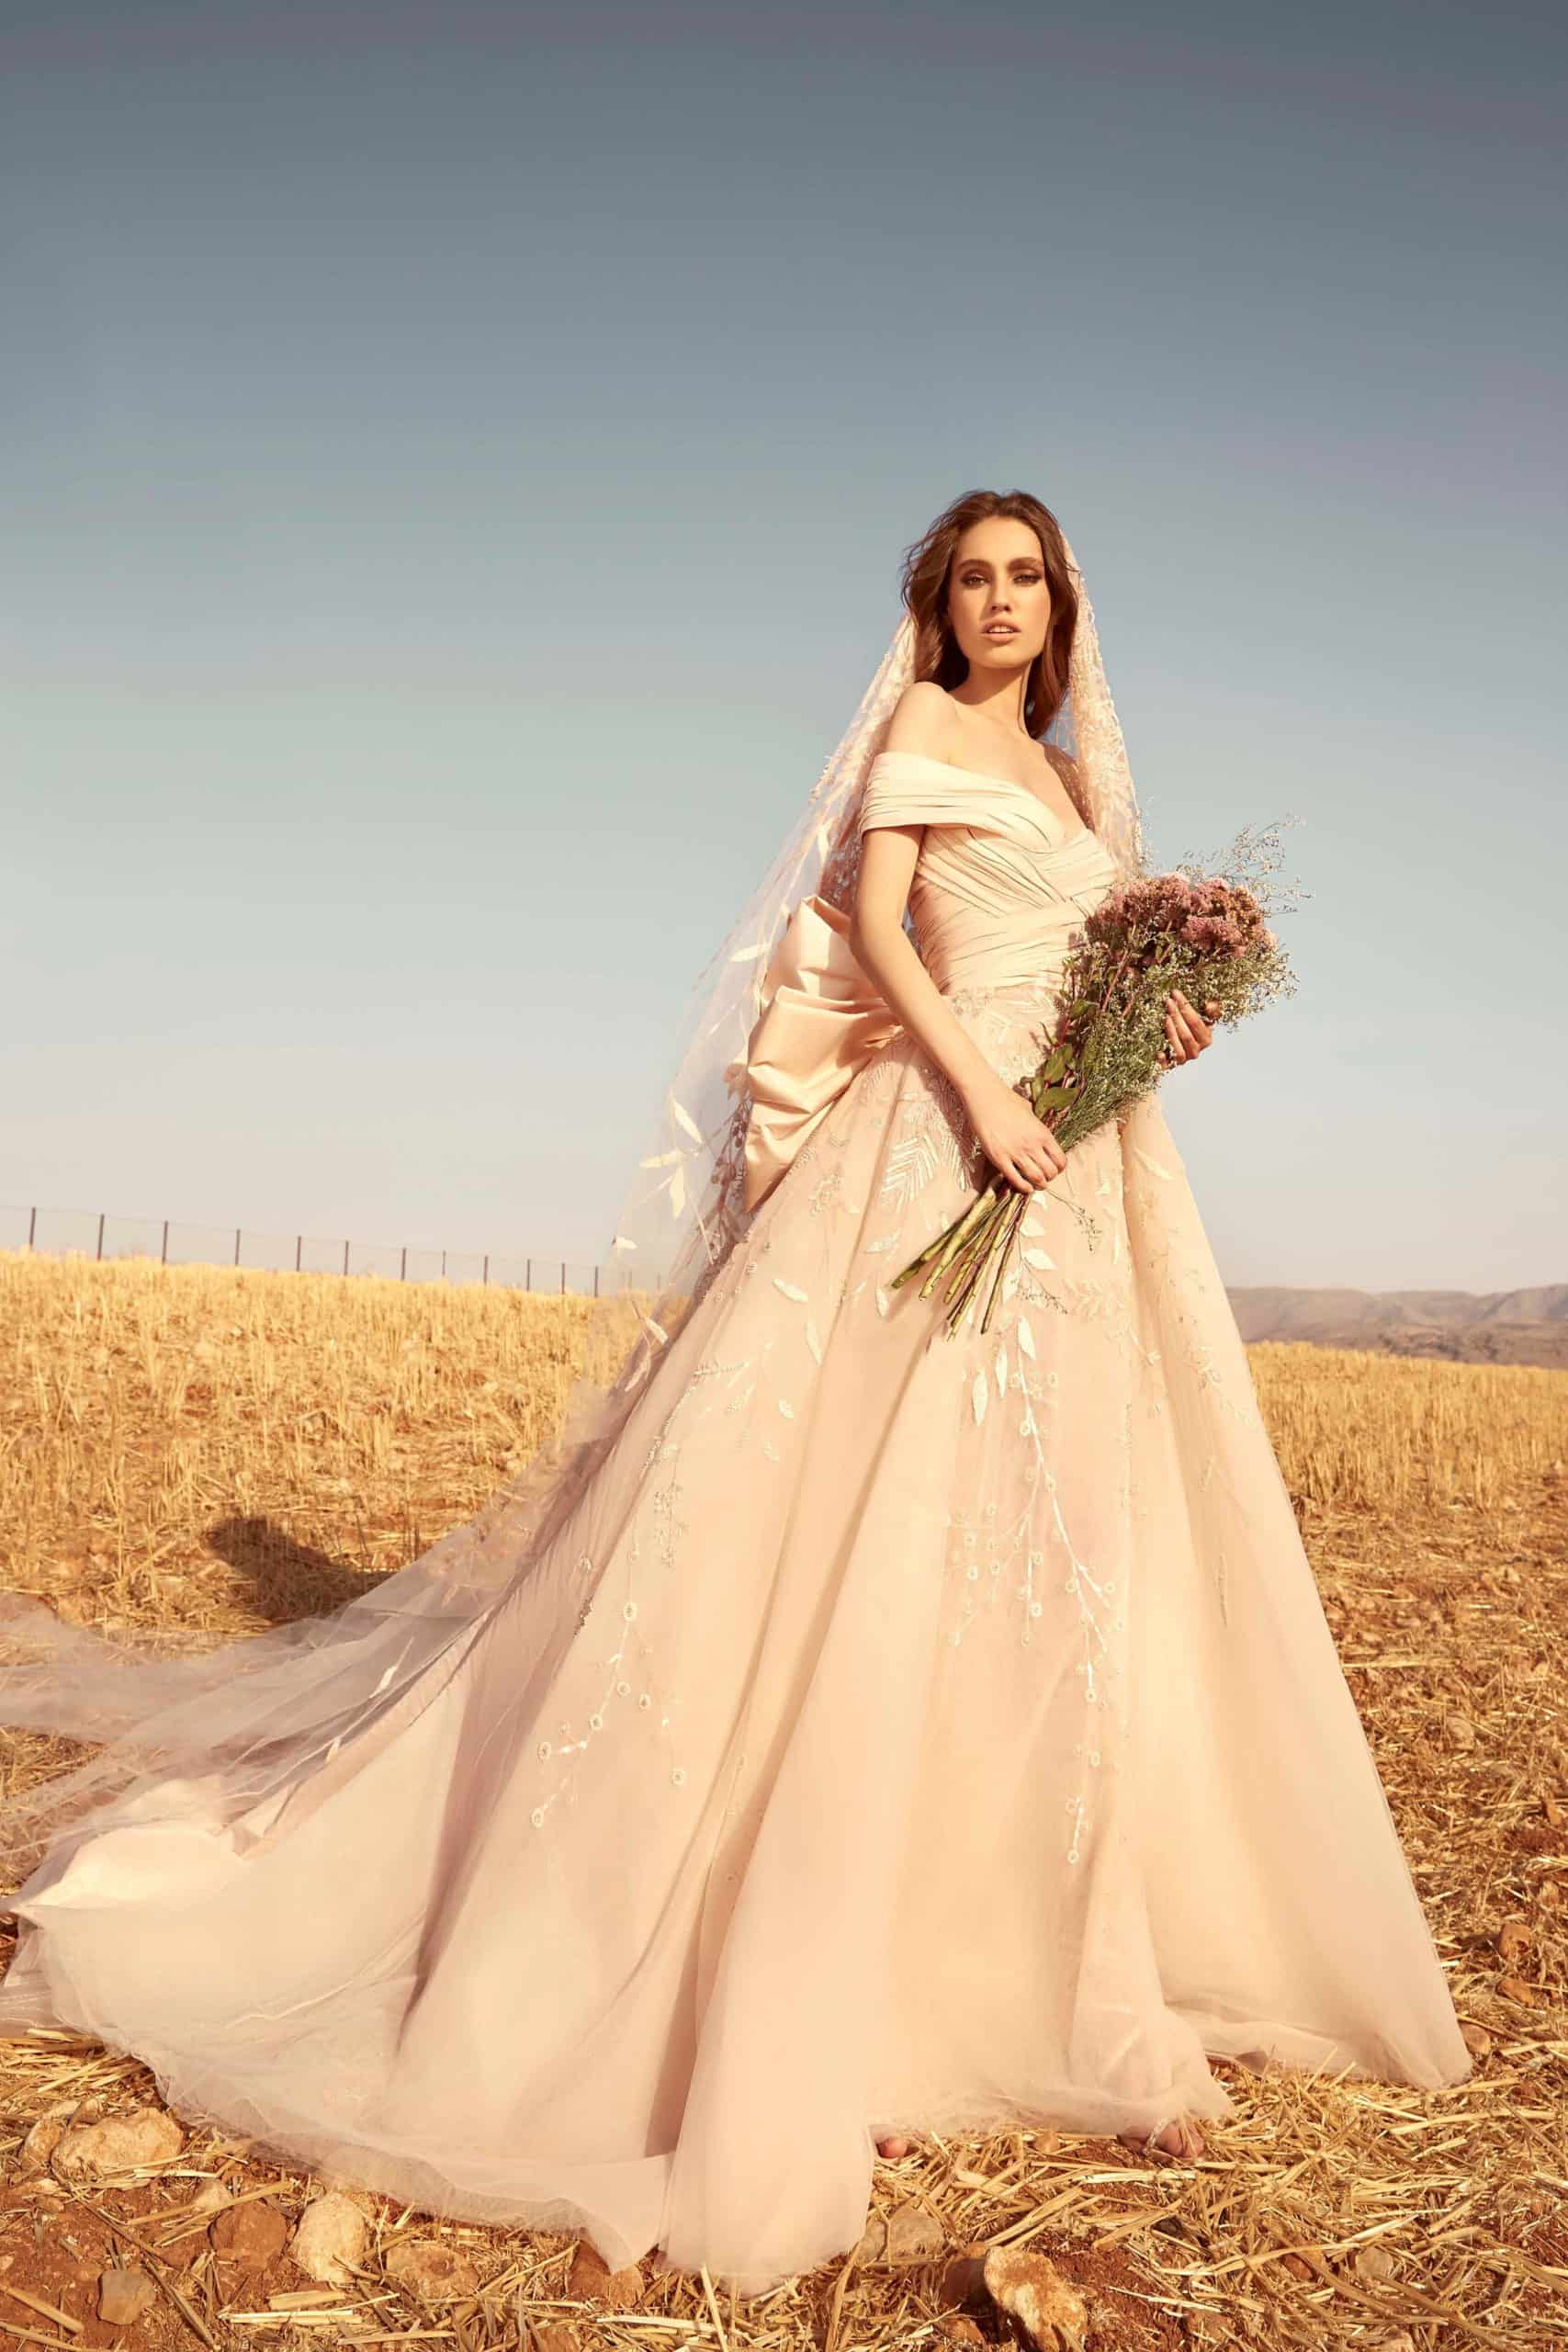 beige tulle wedding dress with back large satin bow by Zuhair Murad